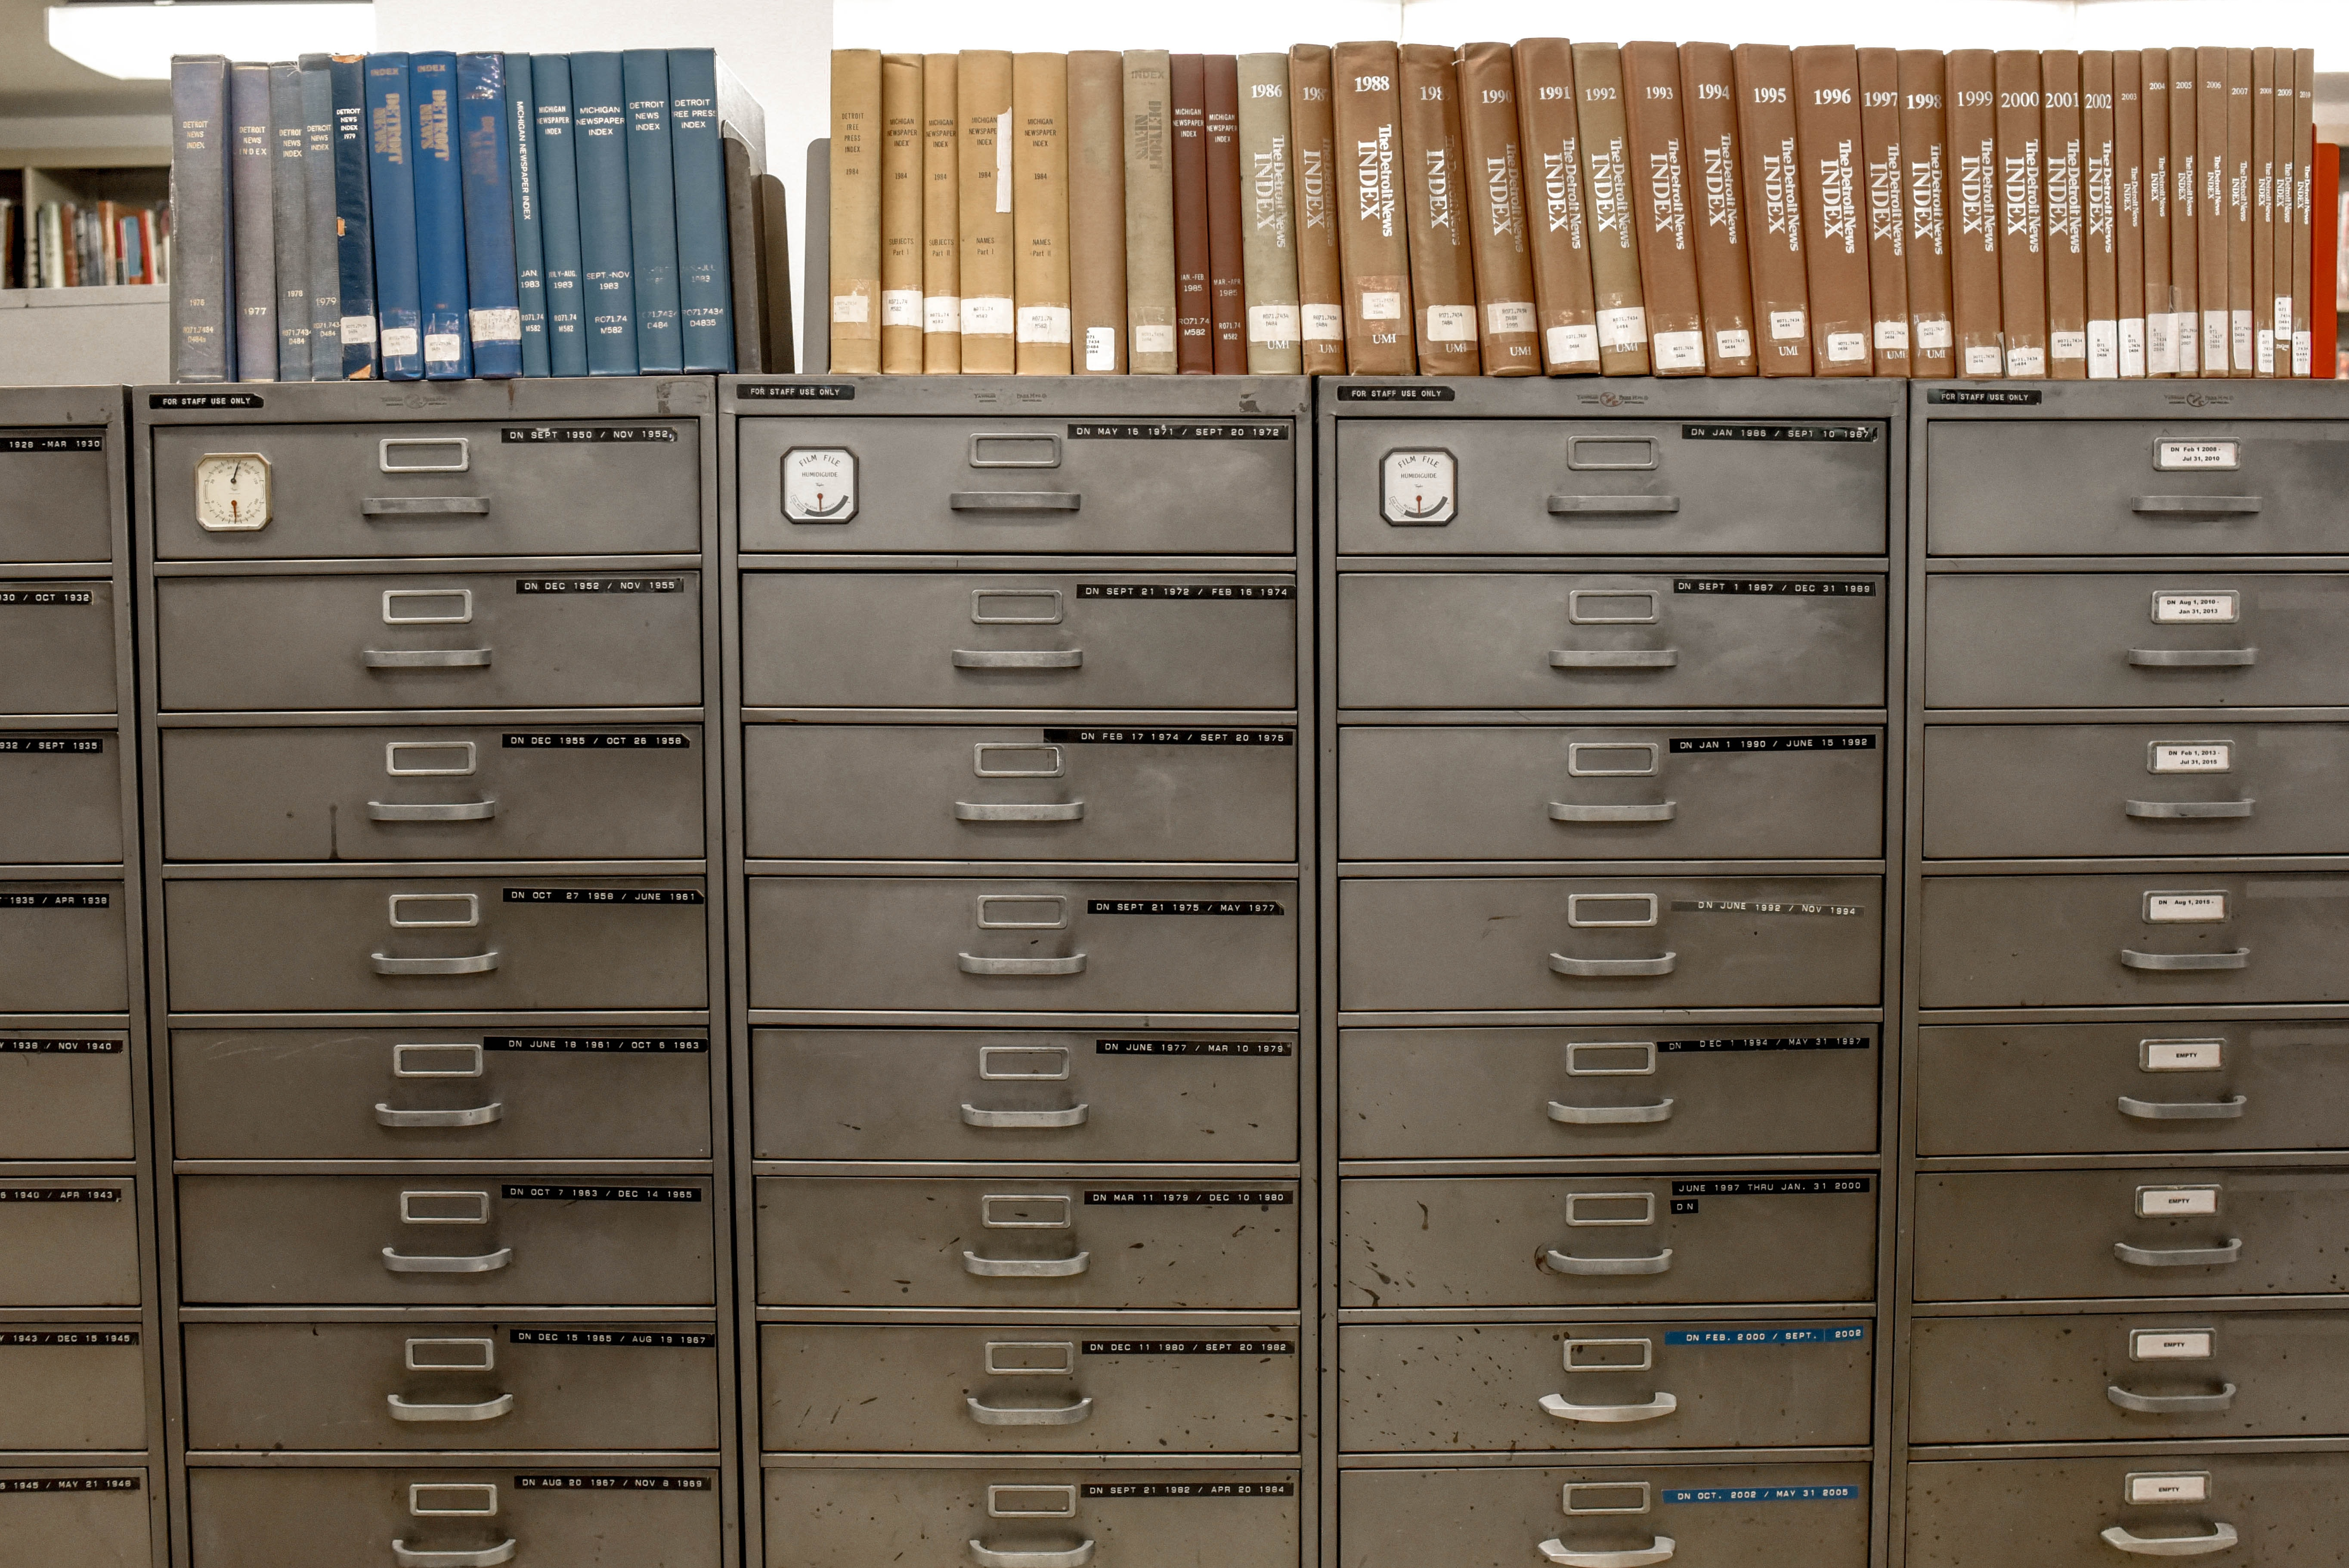 Old-fashioned filing system